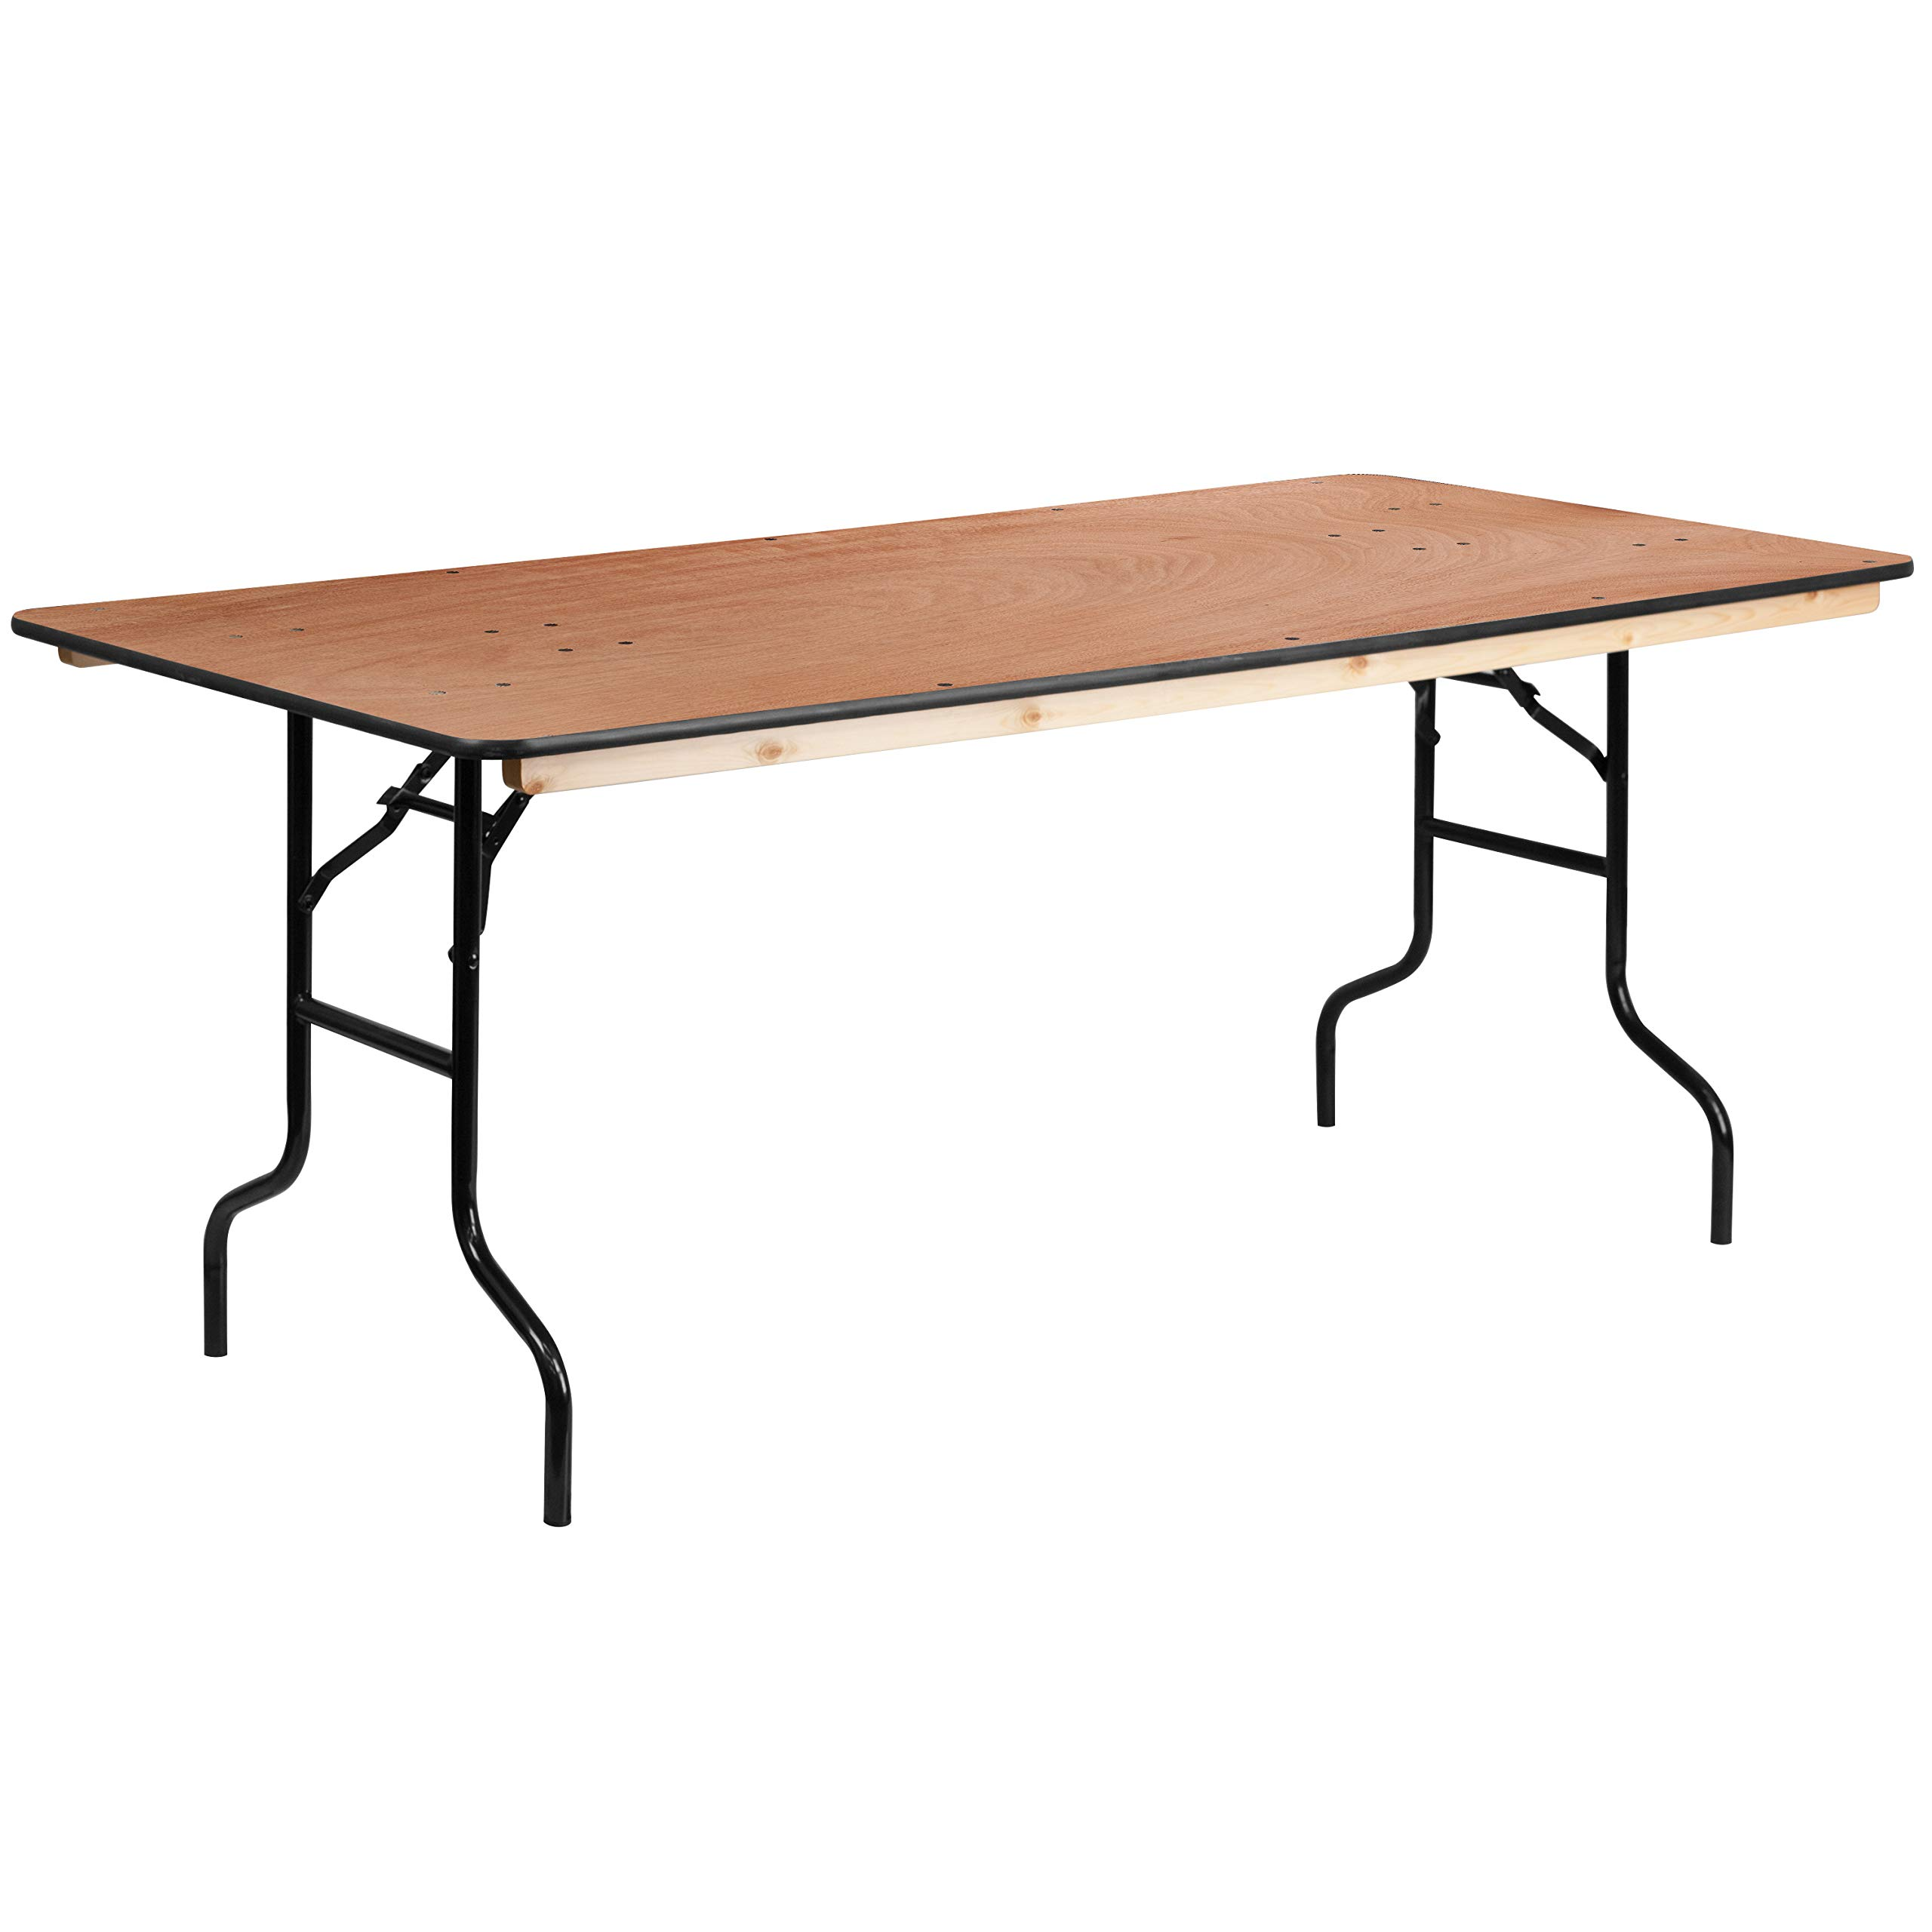 Flash Furniture 36'' x 72'' Rectangular Wood Folding Banquet Table with Clear Coated Finished Top by Flash Furniture